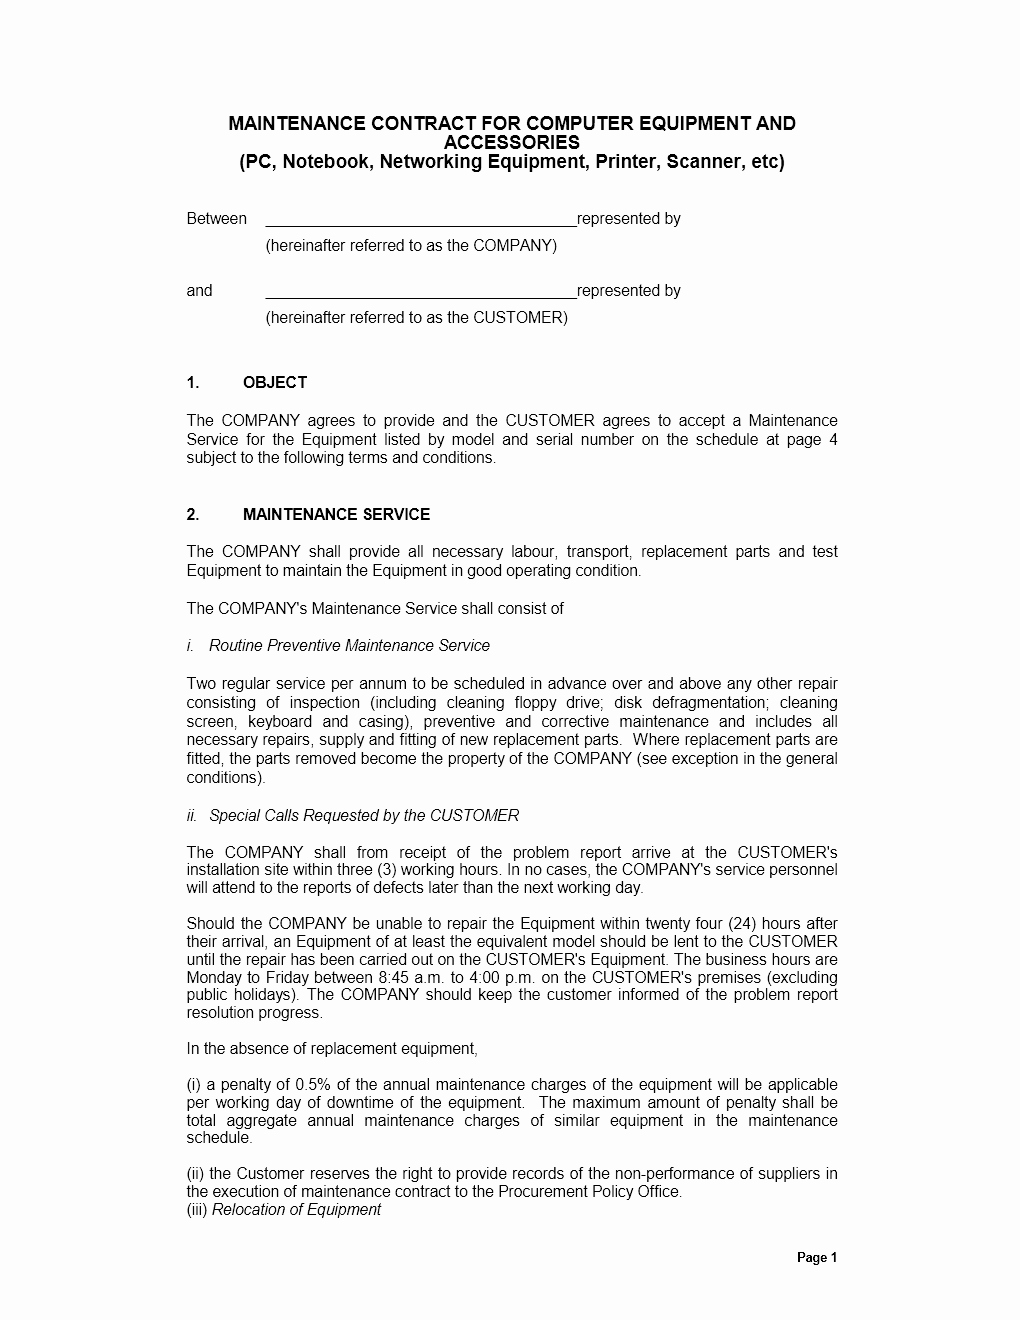 Computer Repair Agreement Template Best Of Agreement Archives Page 2 Of 5